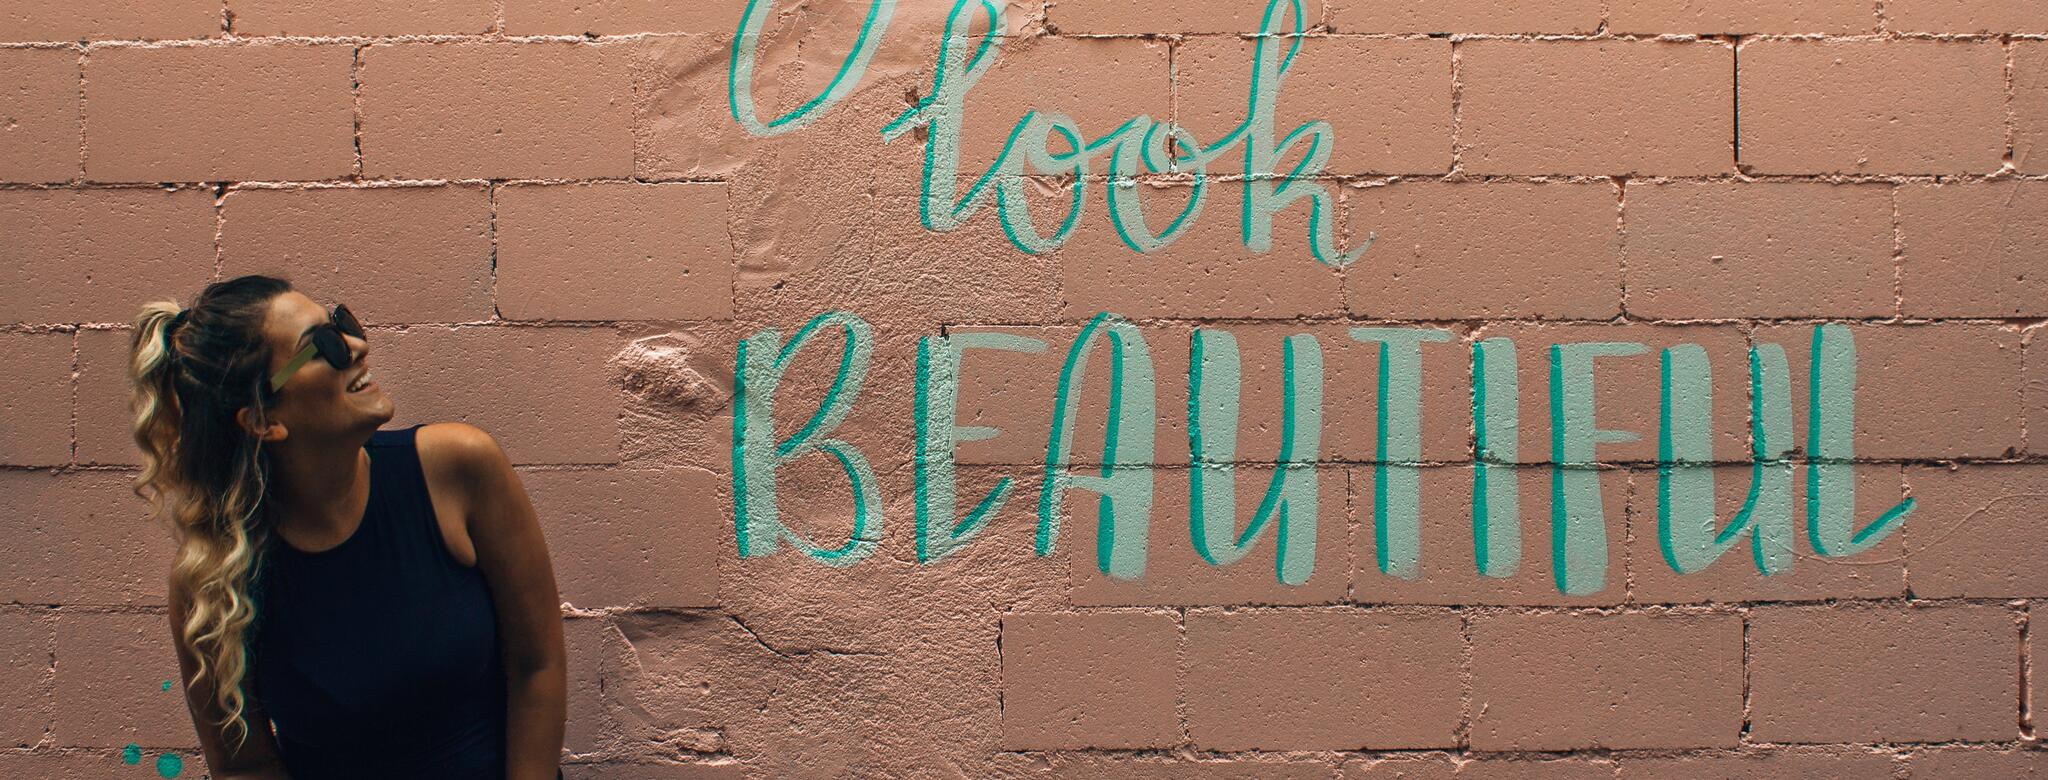 "Woman leaning on a painted brick wall with a ""You look beautiful"" mural"